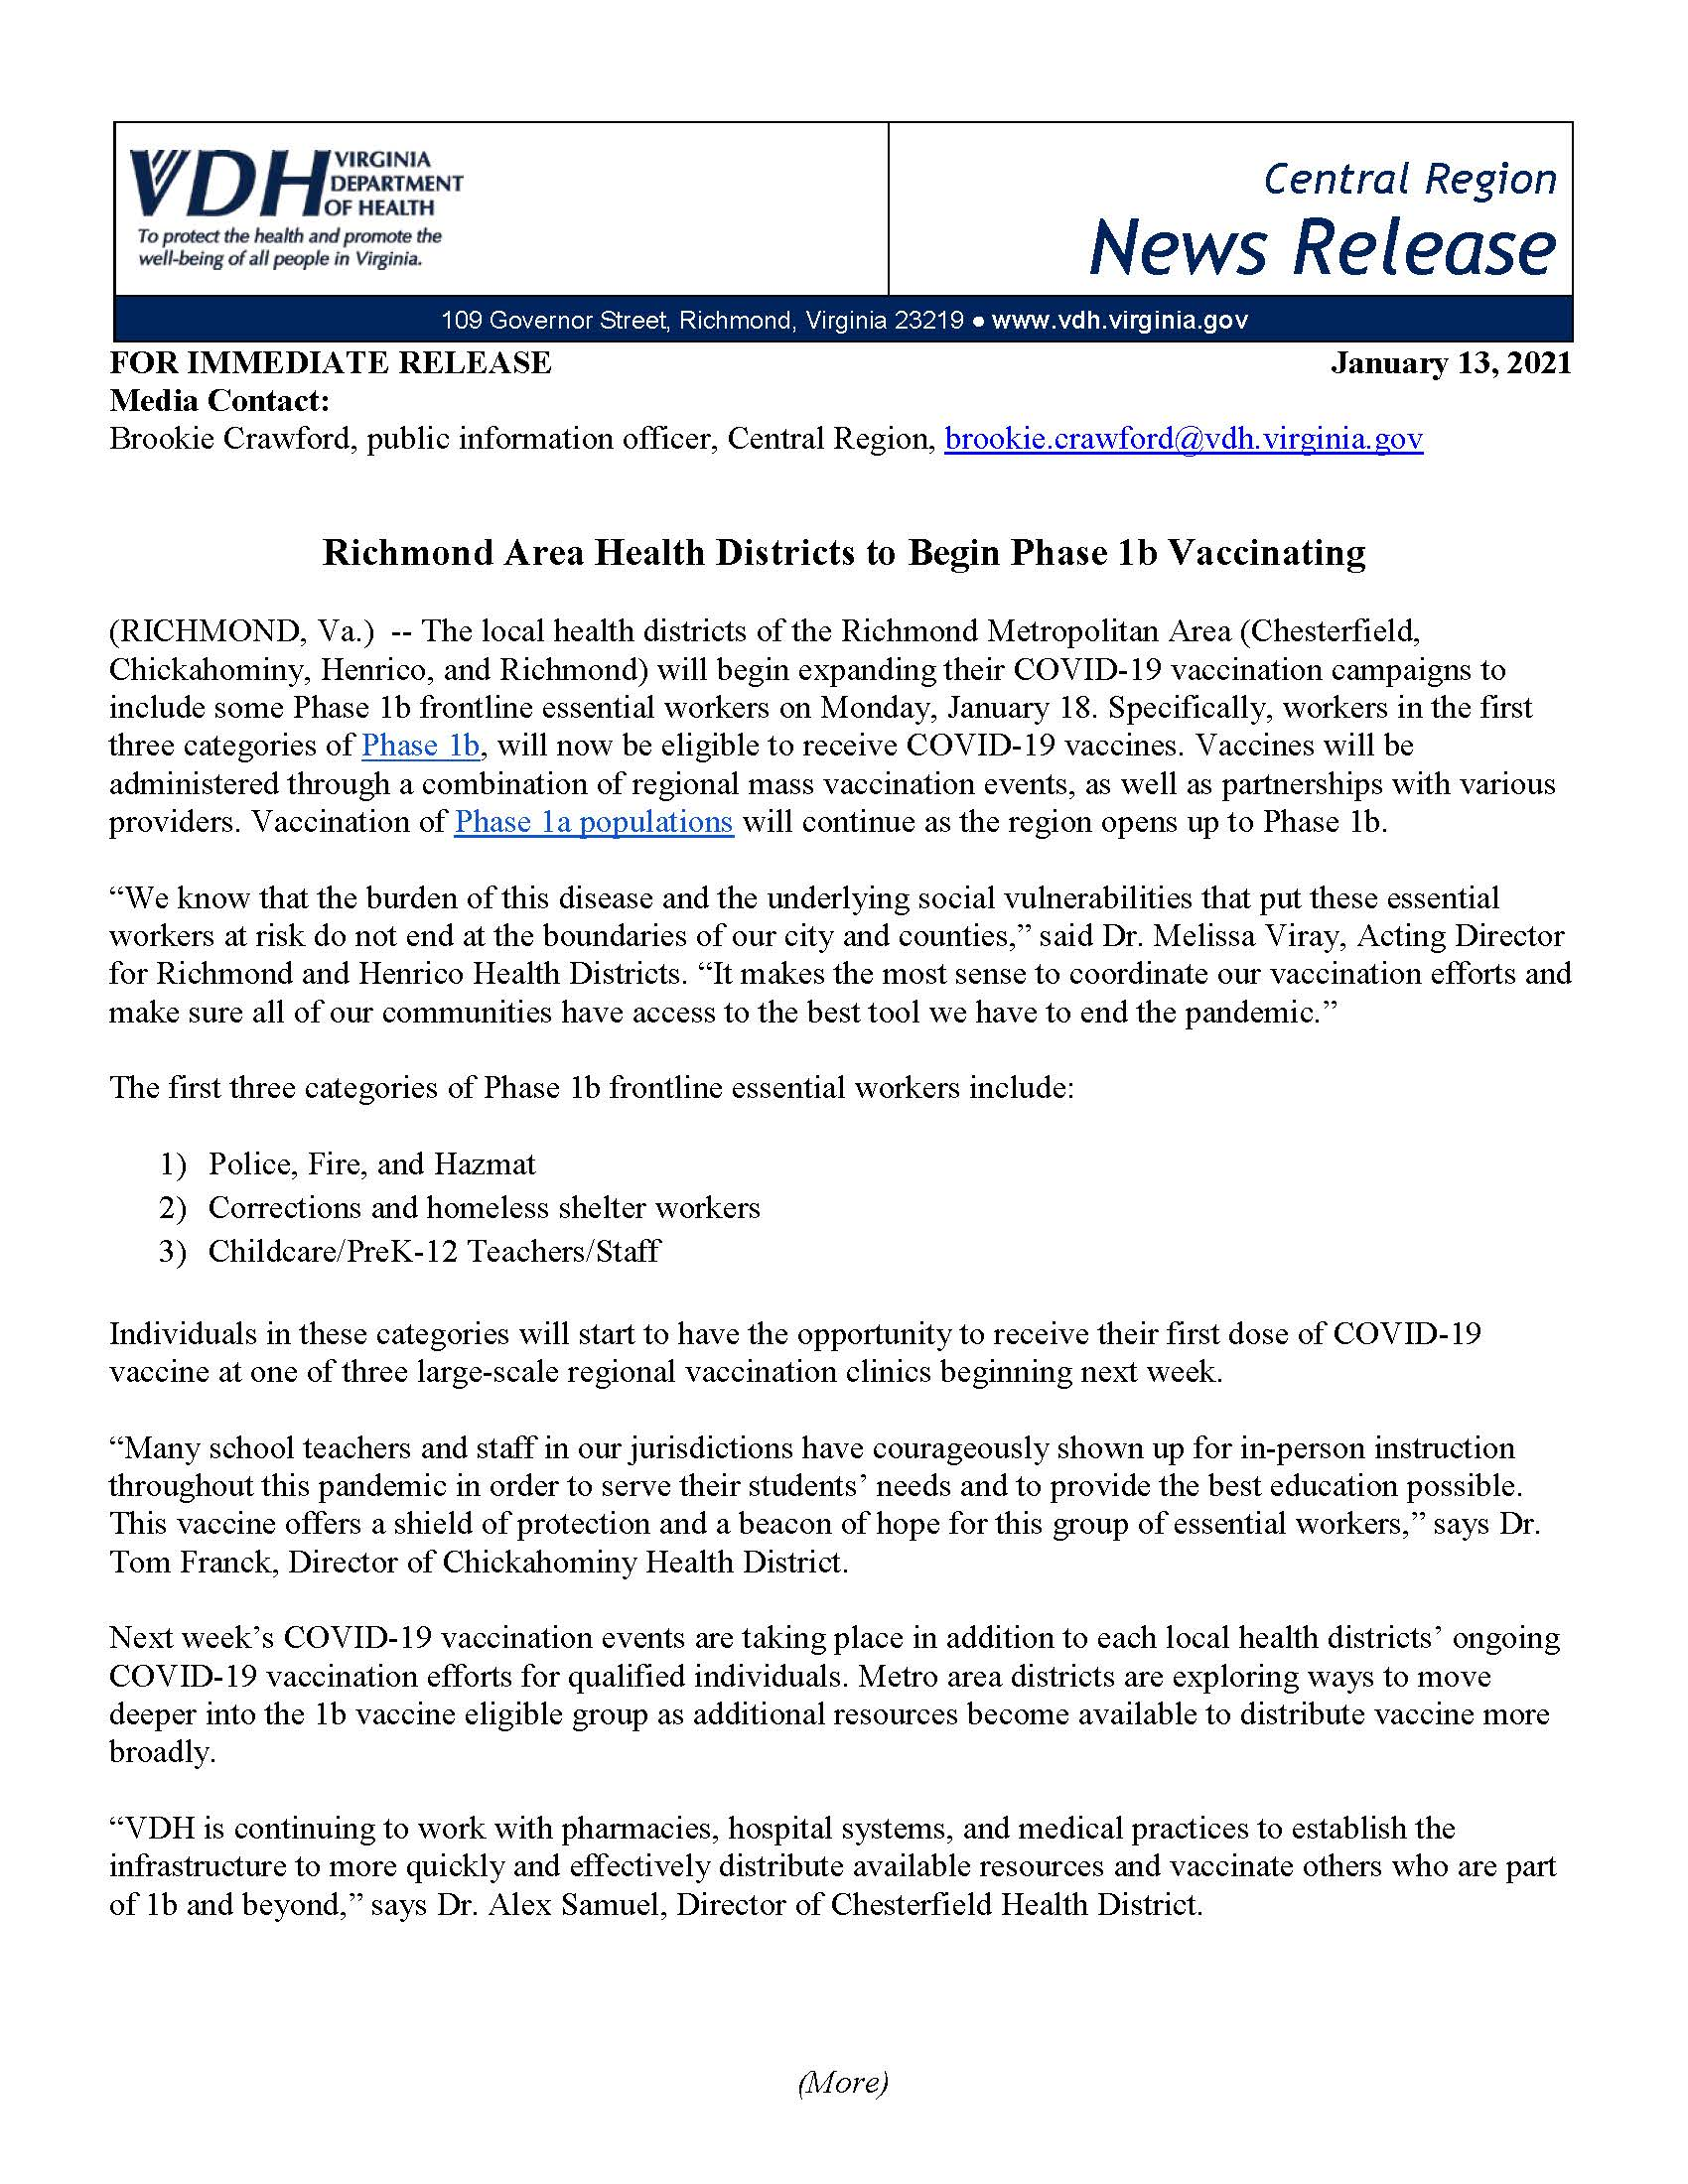 2021-01-13 Richmond Region to Begin Phase 1b Press Release_Page_1